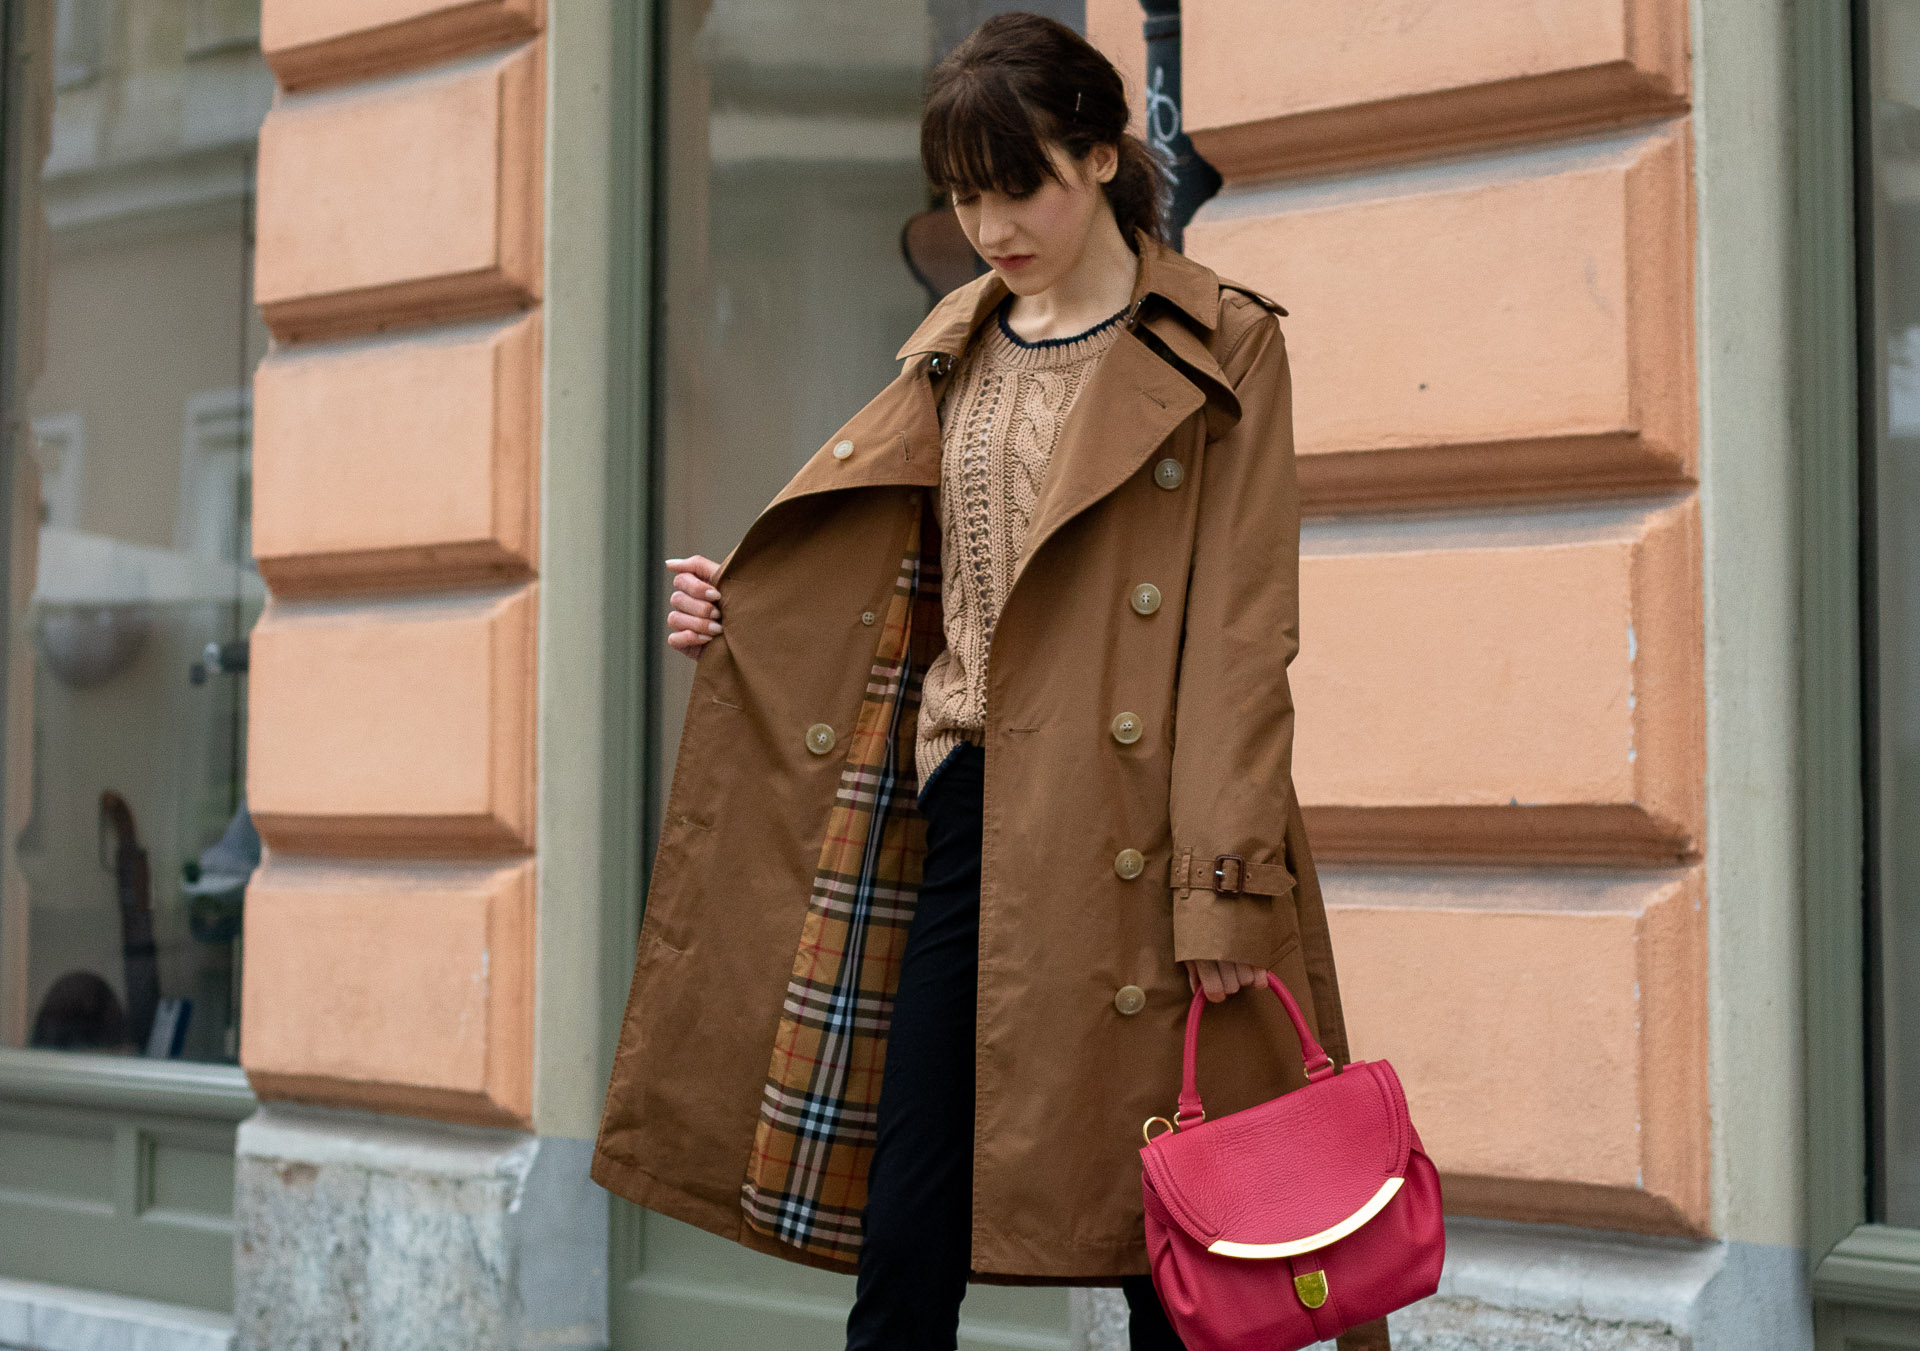 Must follow Slovenian Fashion Blogger Veronika Lipar of Brunette from Wall Street wearing camel Burberry Kensington trench coat Mango cable knit sweater pink top handle bag low ponytail bangs going to the office